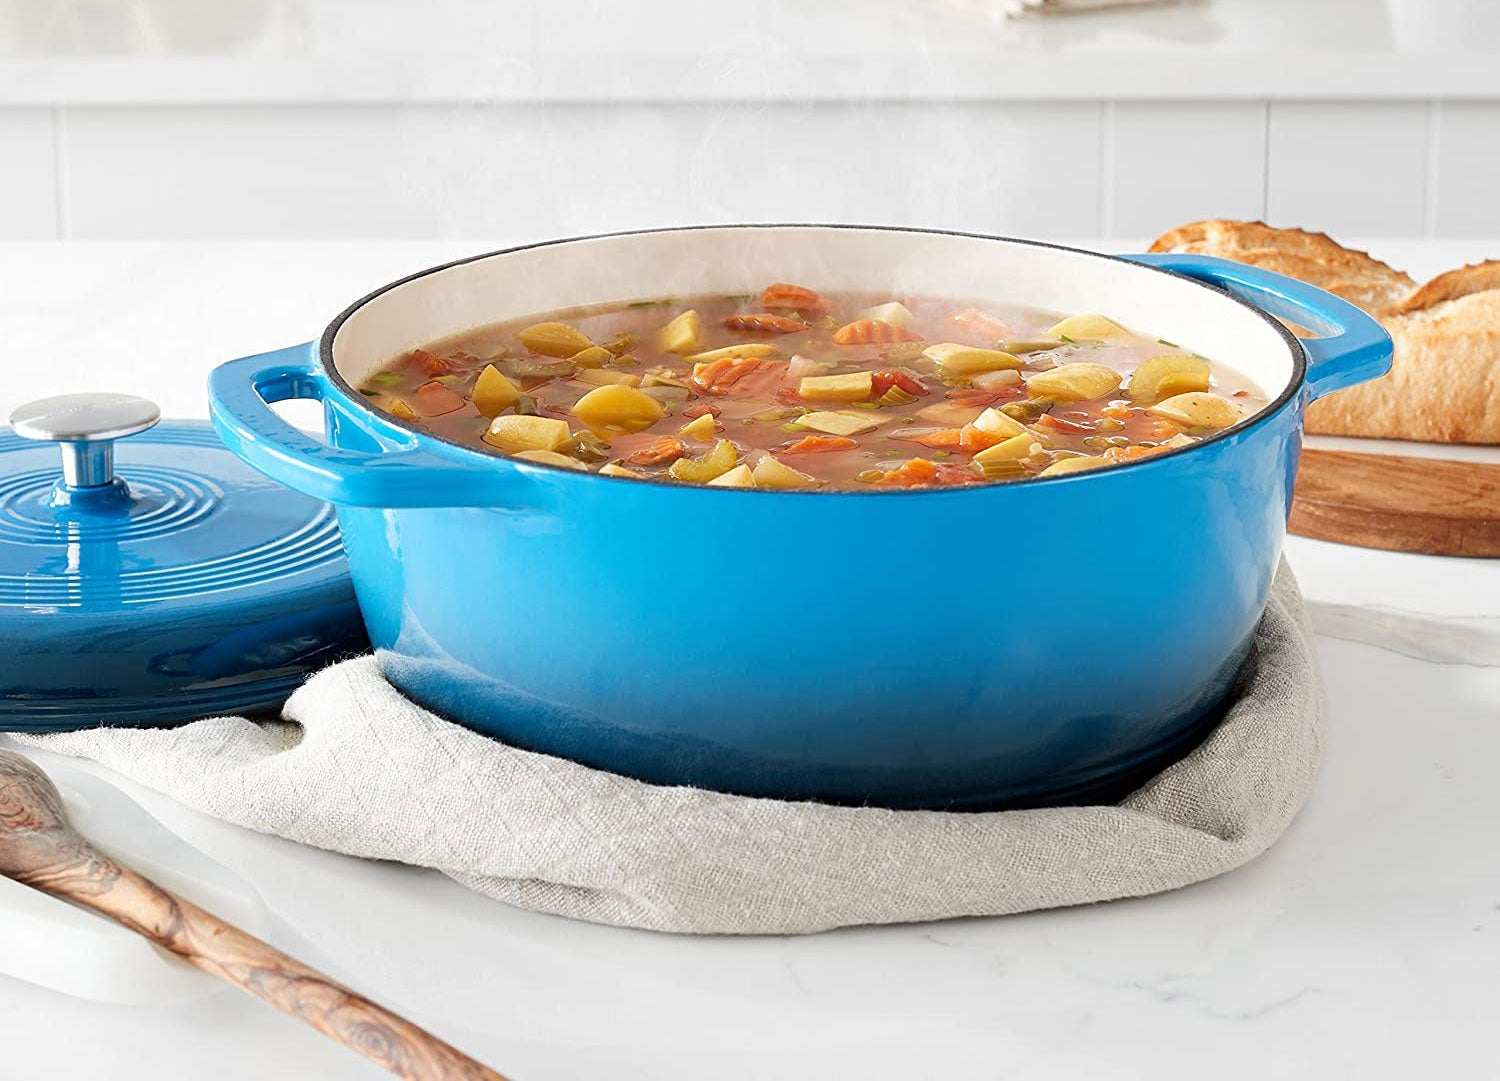 Buying an Enameled Cast-Iron Dutch Oven